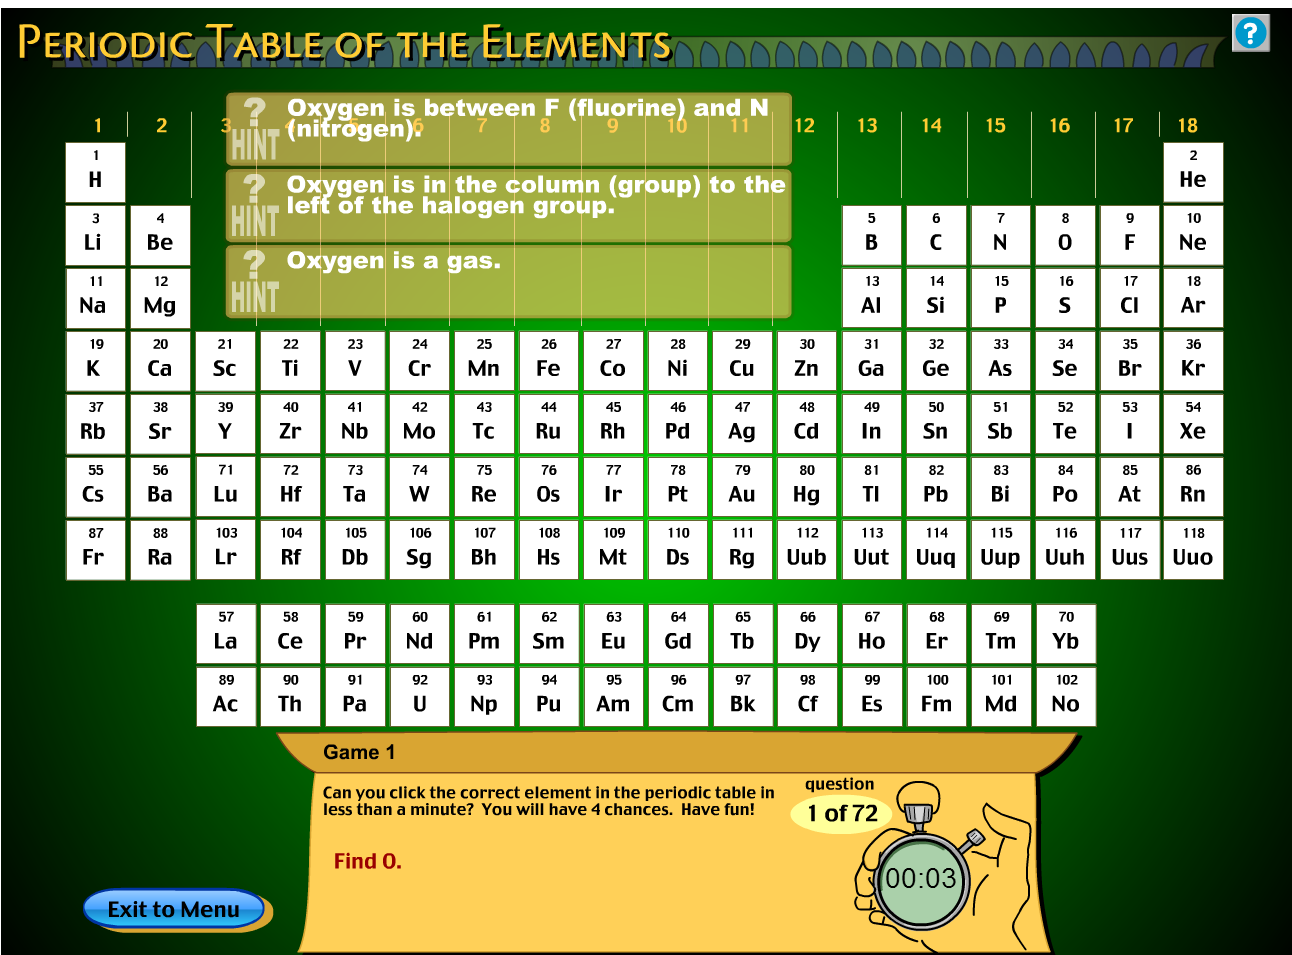 Technology rocks seriously interactive periodic tables games fossweb has a neat periodic table of the elements game that even will give you hints as you play urtaz Choice Image